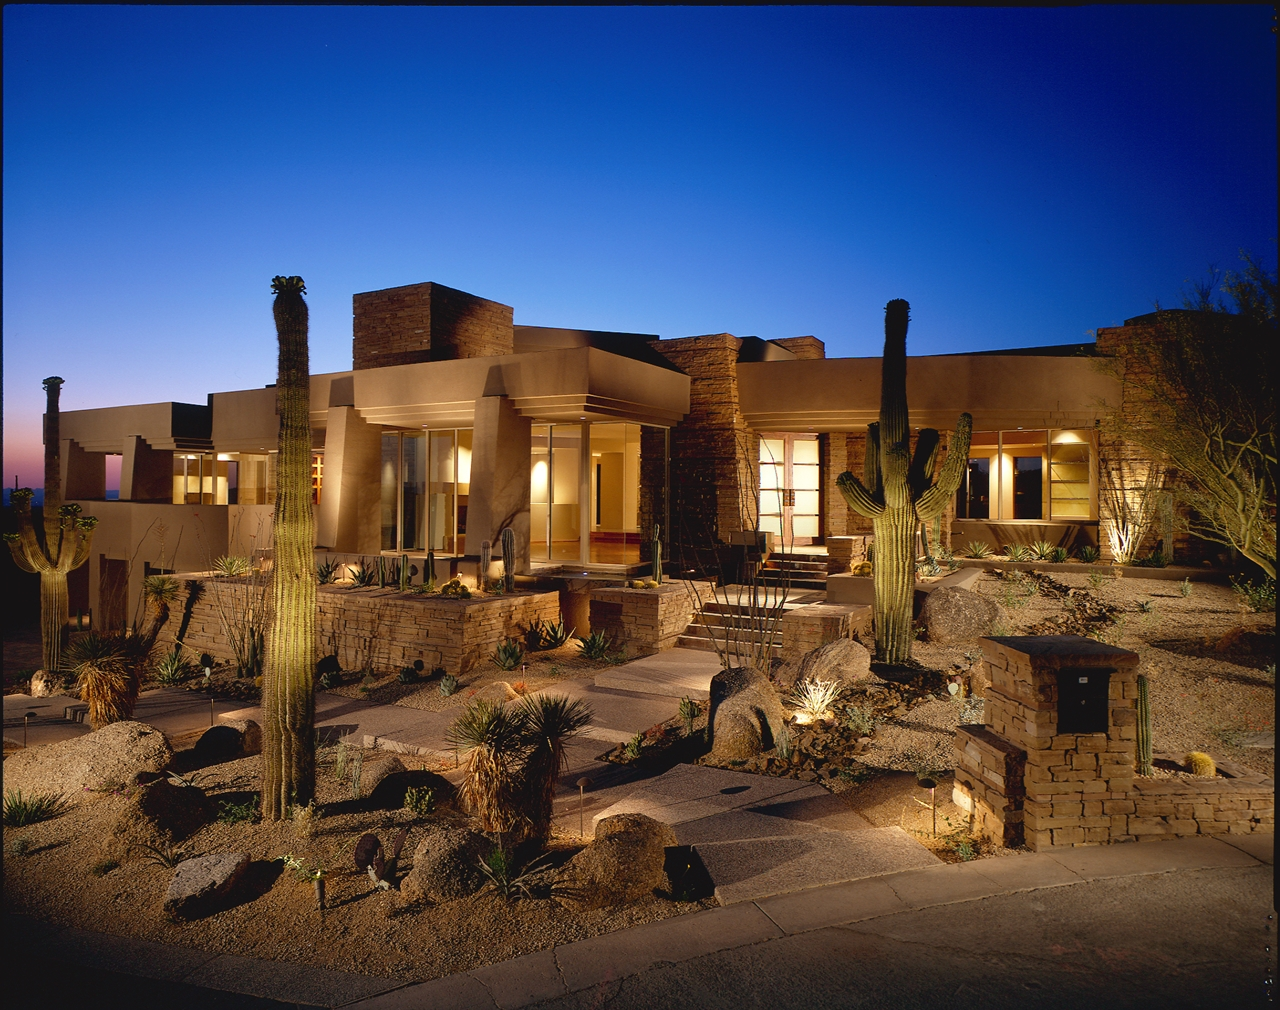 Arizona wallpapers high quality download free - Villa decor desert o architecture ...